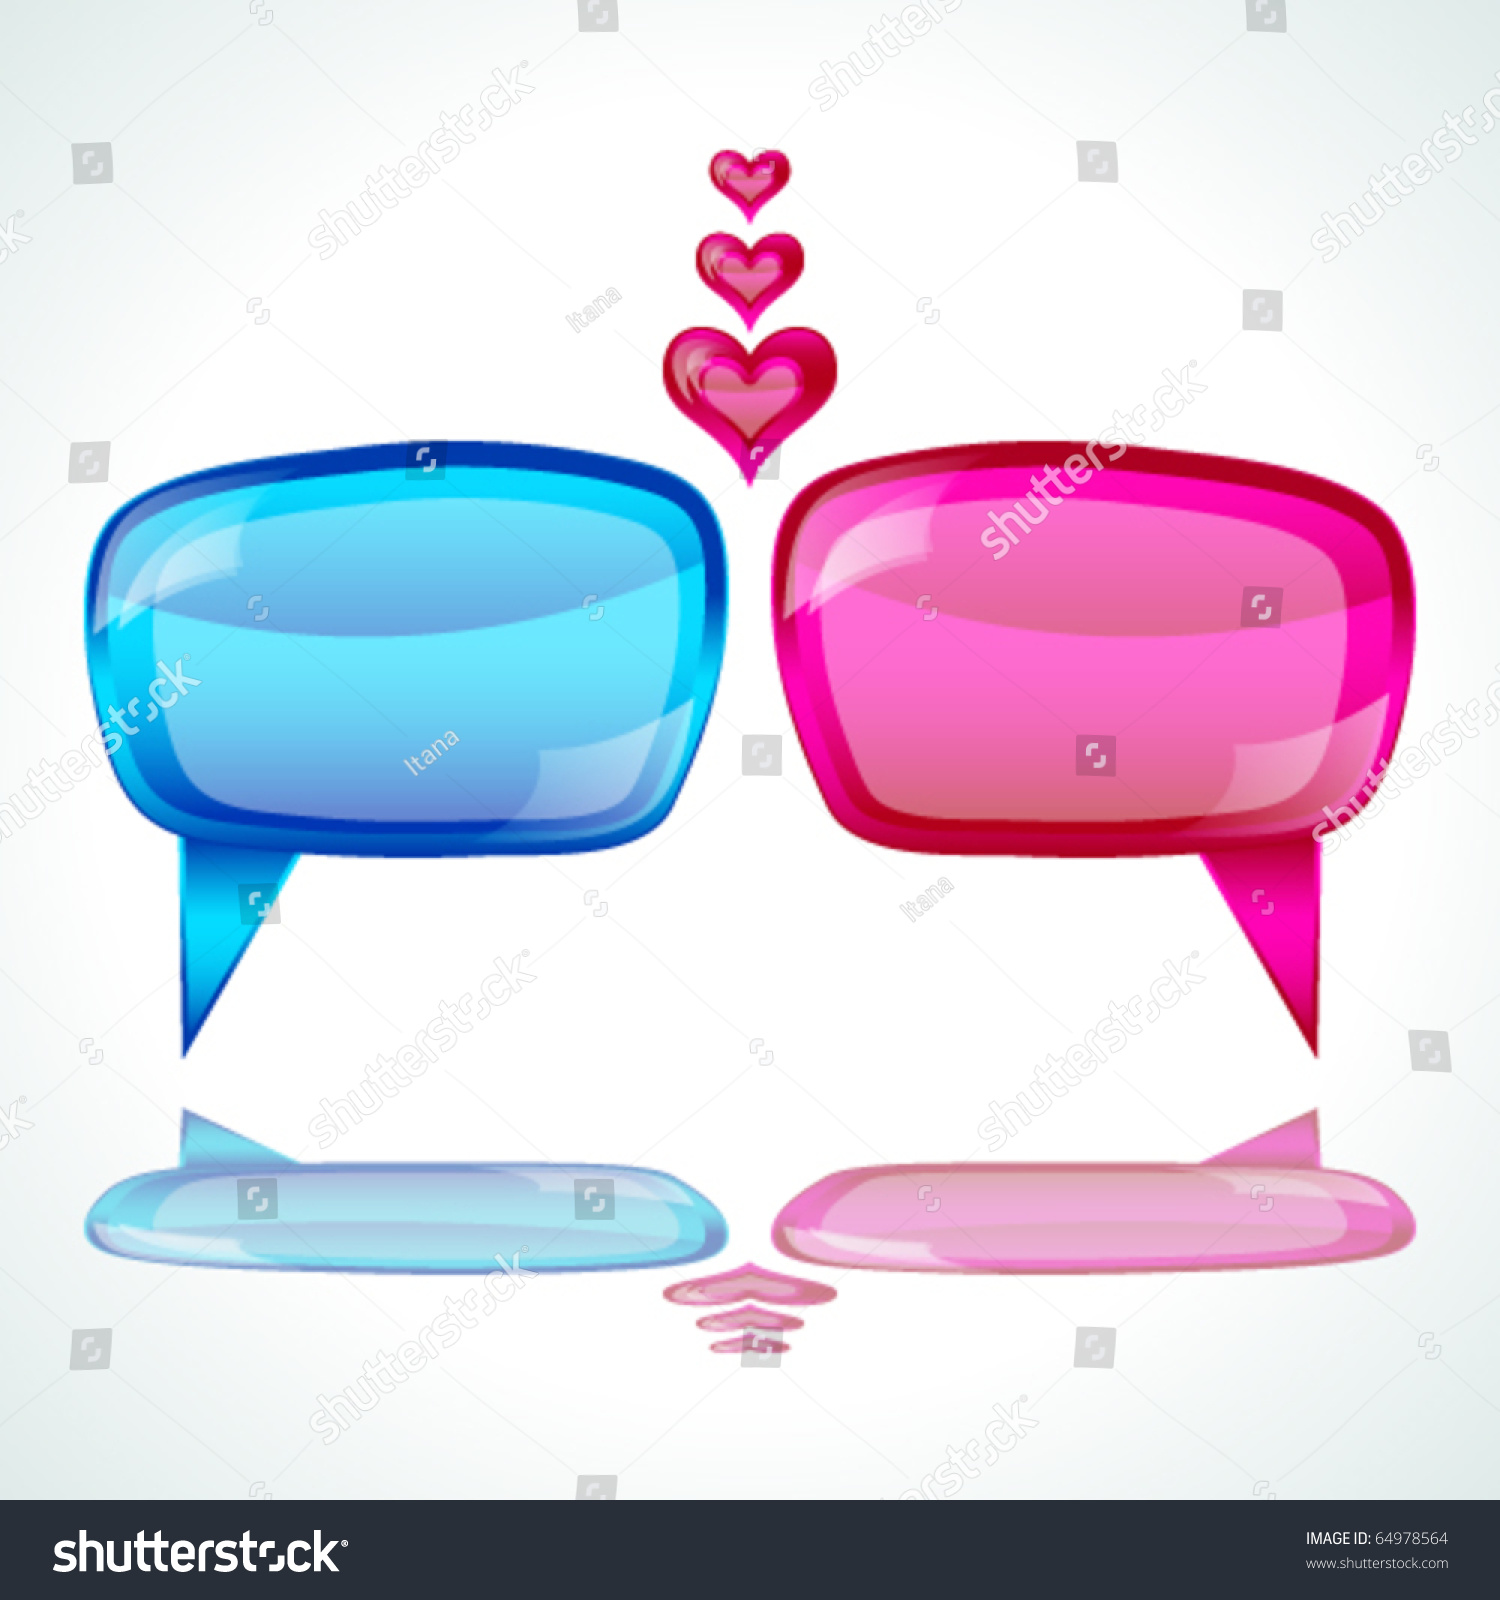 love icon facebook chat Cool unicode symbols, text icons and pictures for nicknames and statuses facebook like this ♥##if you love someone.